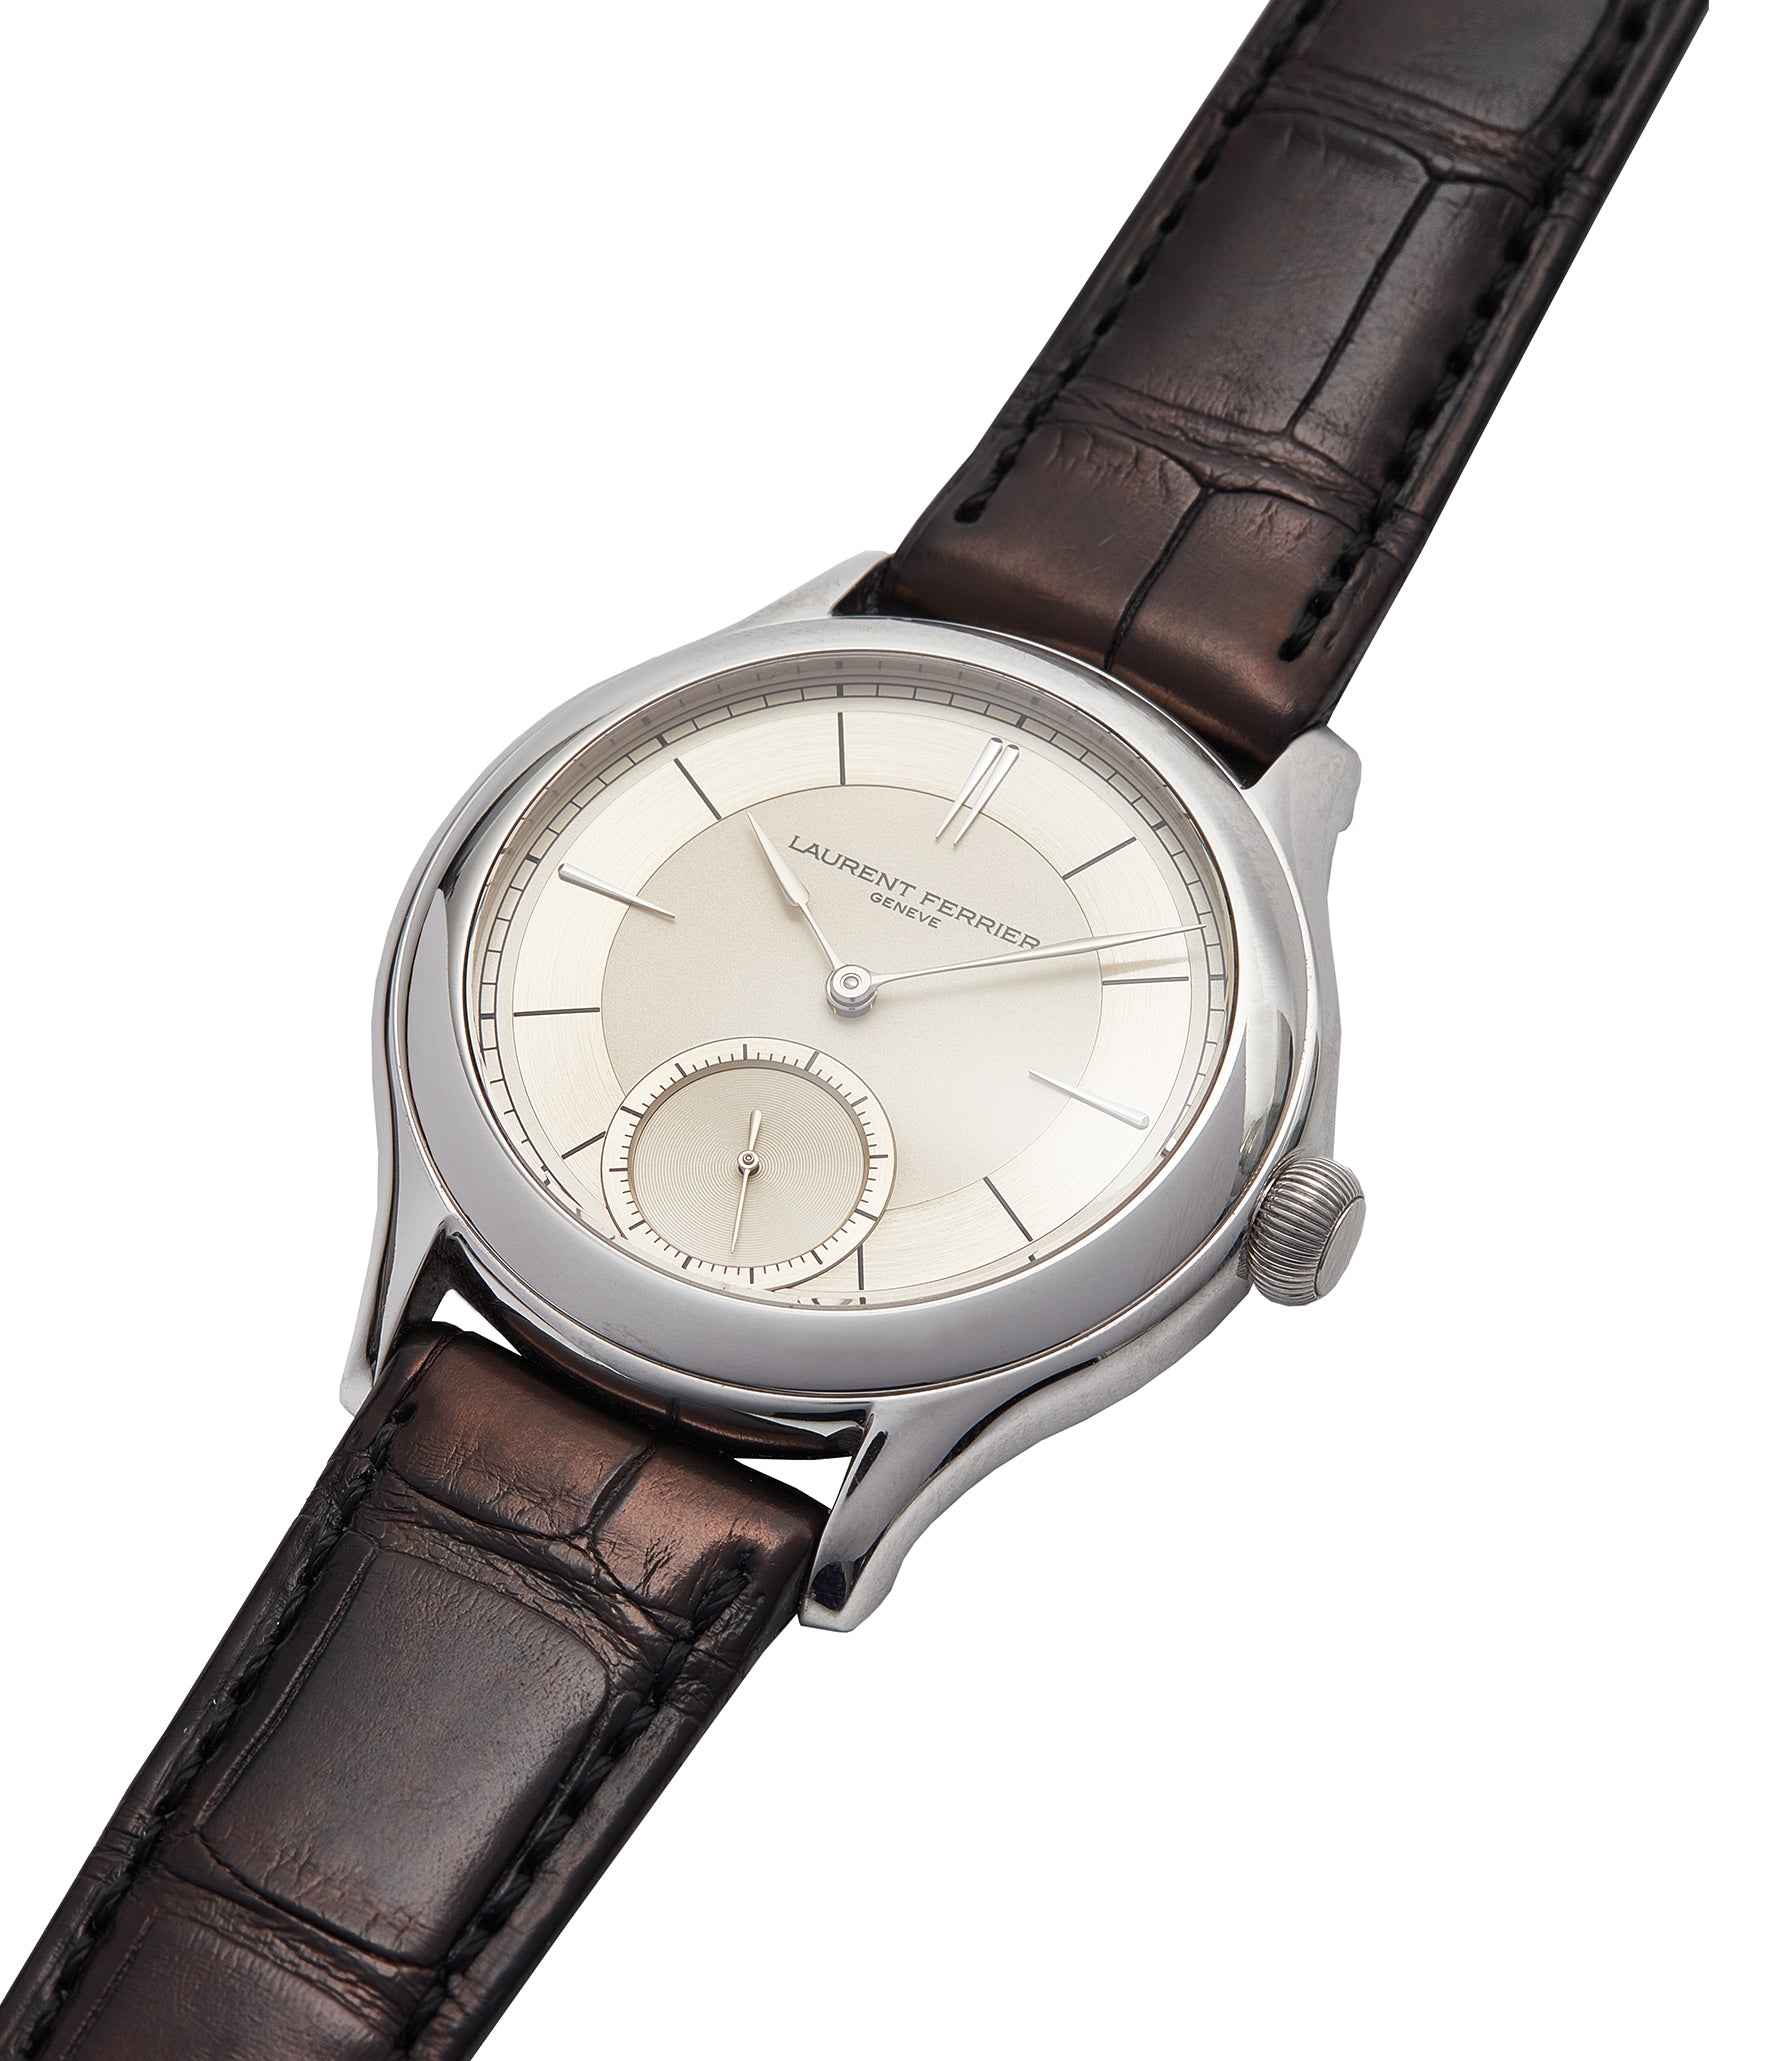 selling Laurent Ferrier Galet Micro-rotor 40 mm platinum time-only dress watch from independent watchmaker for sale online at A Collected Man London UK specialist of rare watches